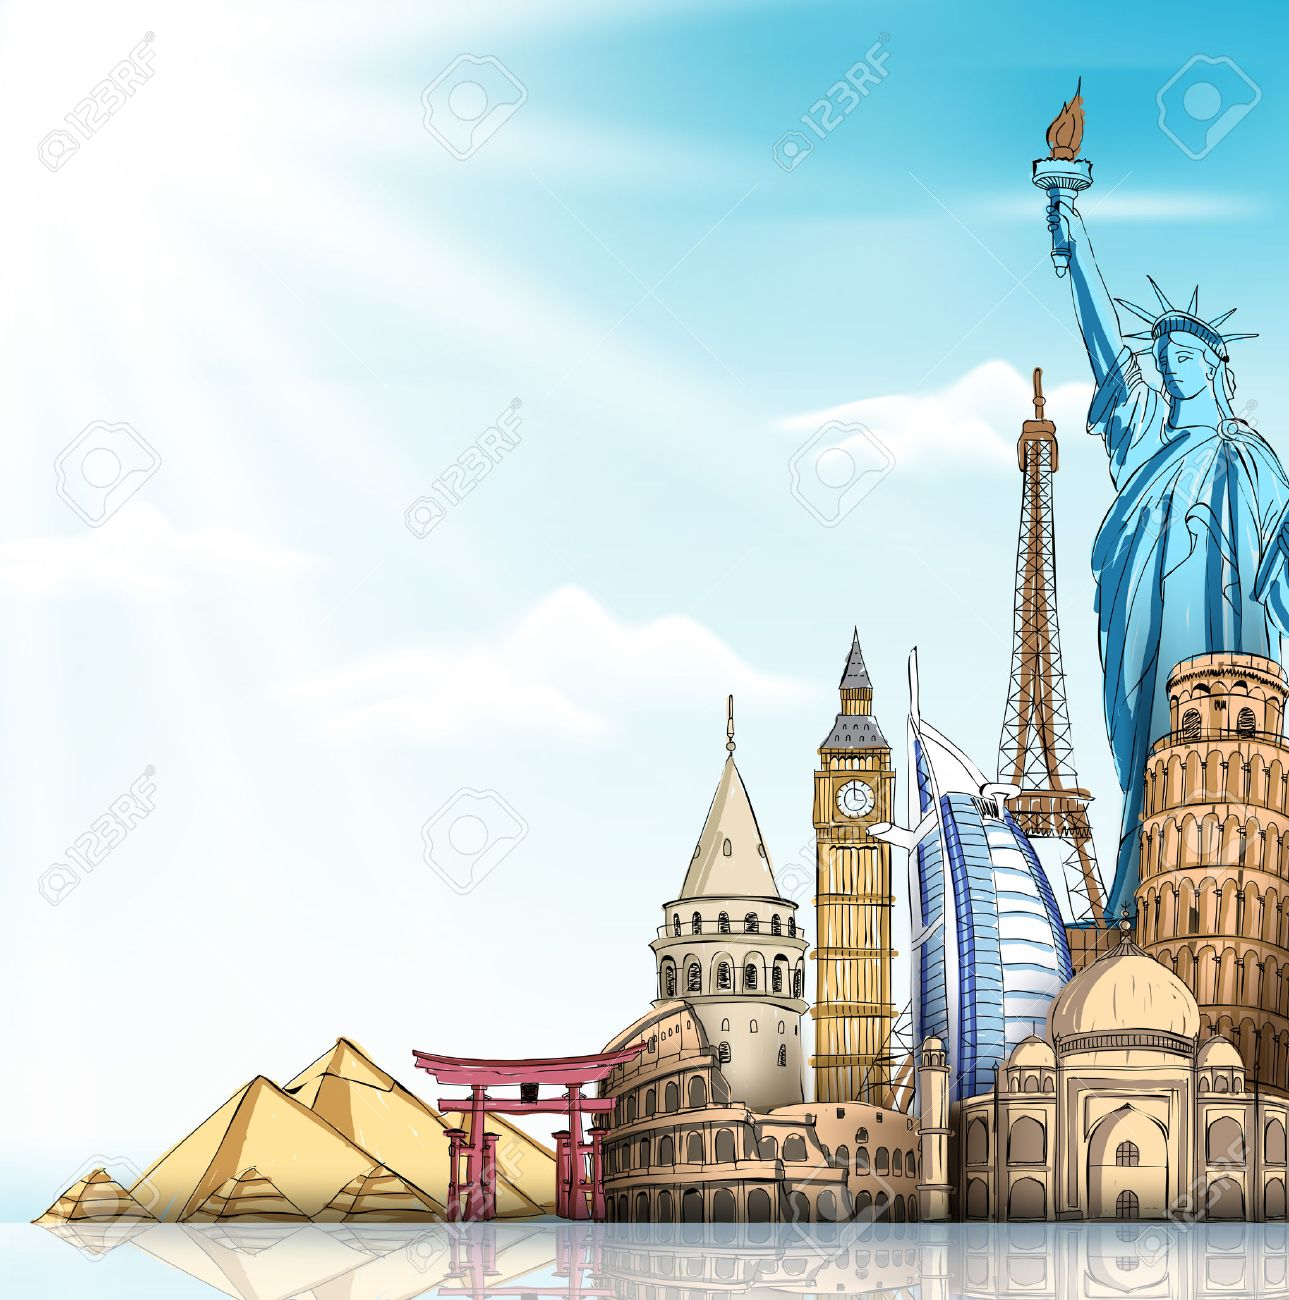 Travel And Tourism Background With Famous World Landmarks In 1289x1300